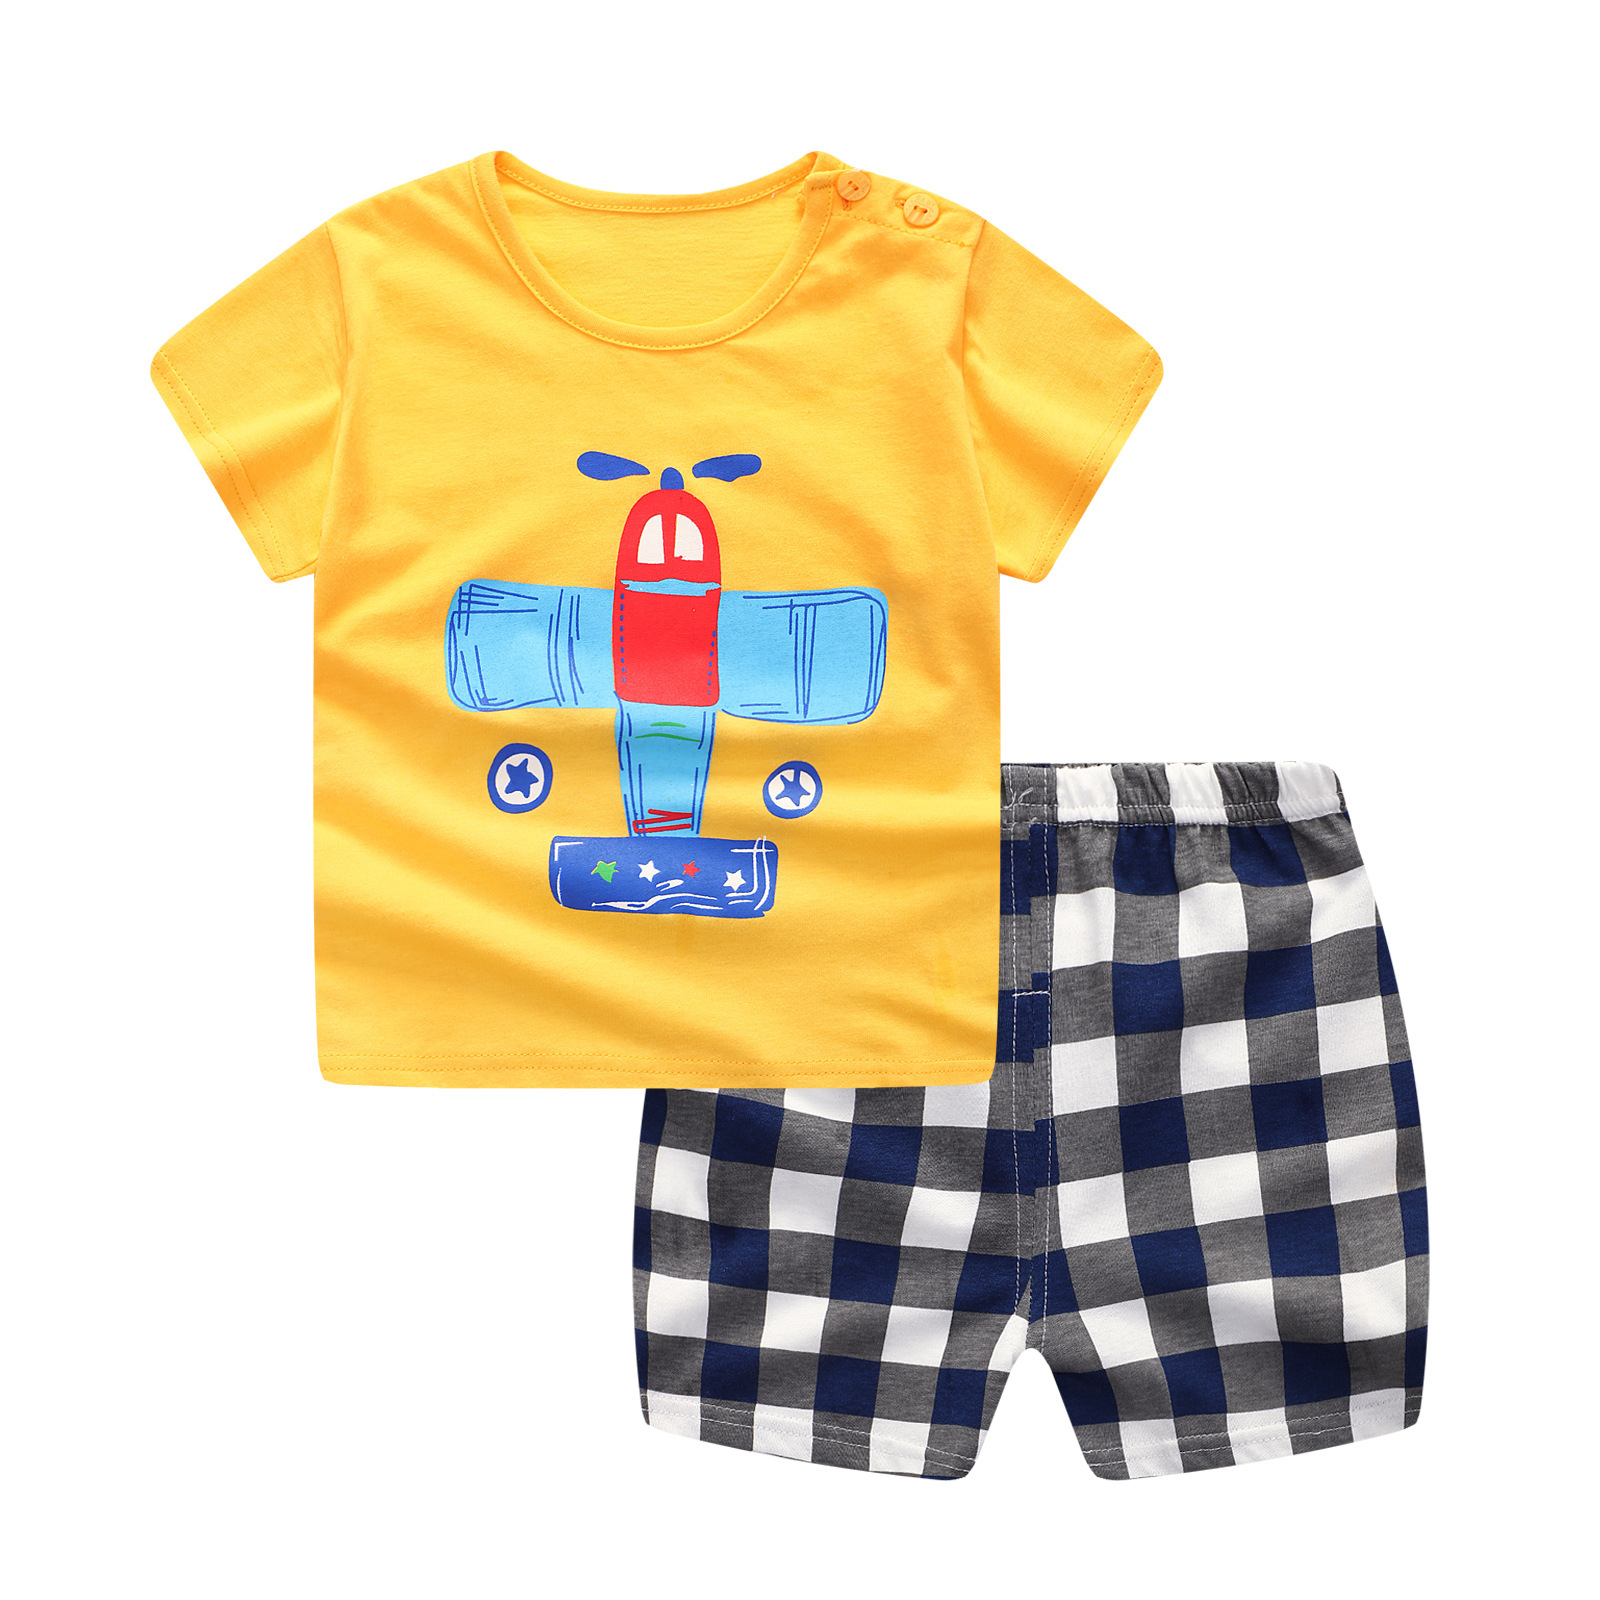 Unini-yun New Kids Clothing Sets Baby Cotton Fashion O-neck Suit Male Baby Summer Short Sleeve Baby Boy Clothes Kids Clothing